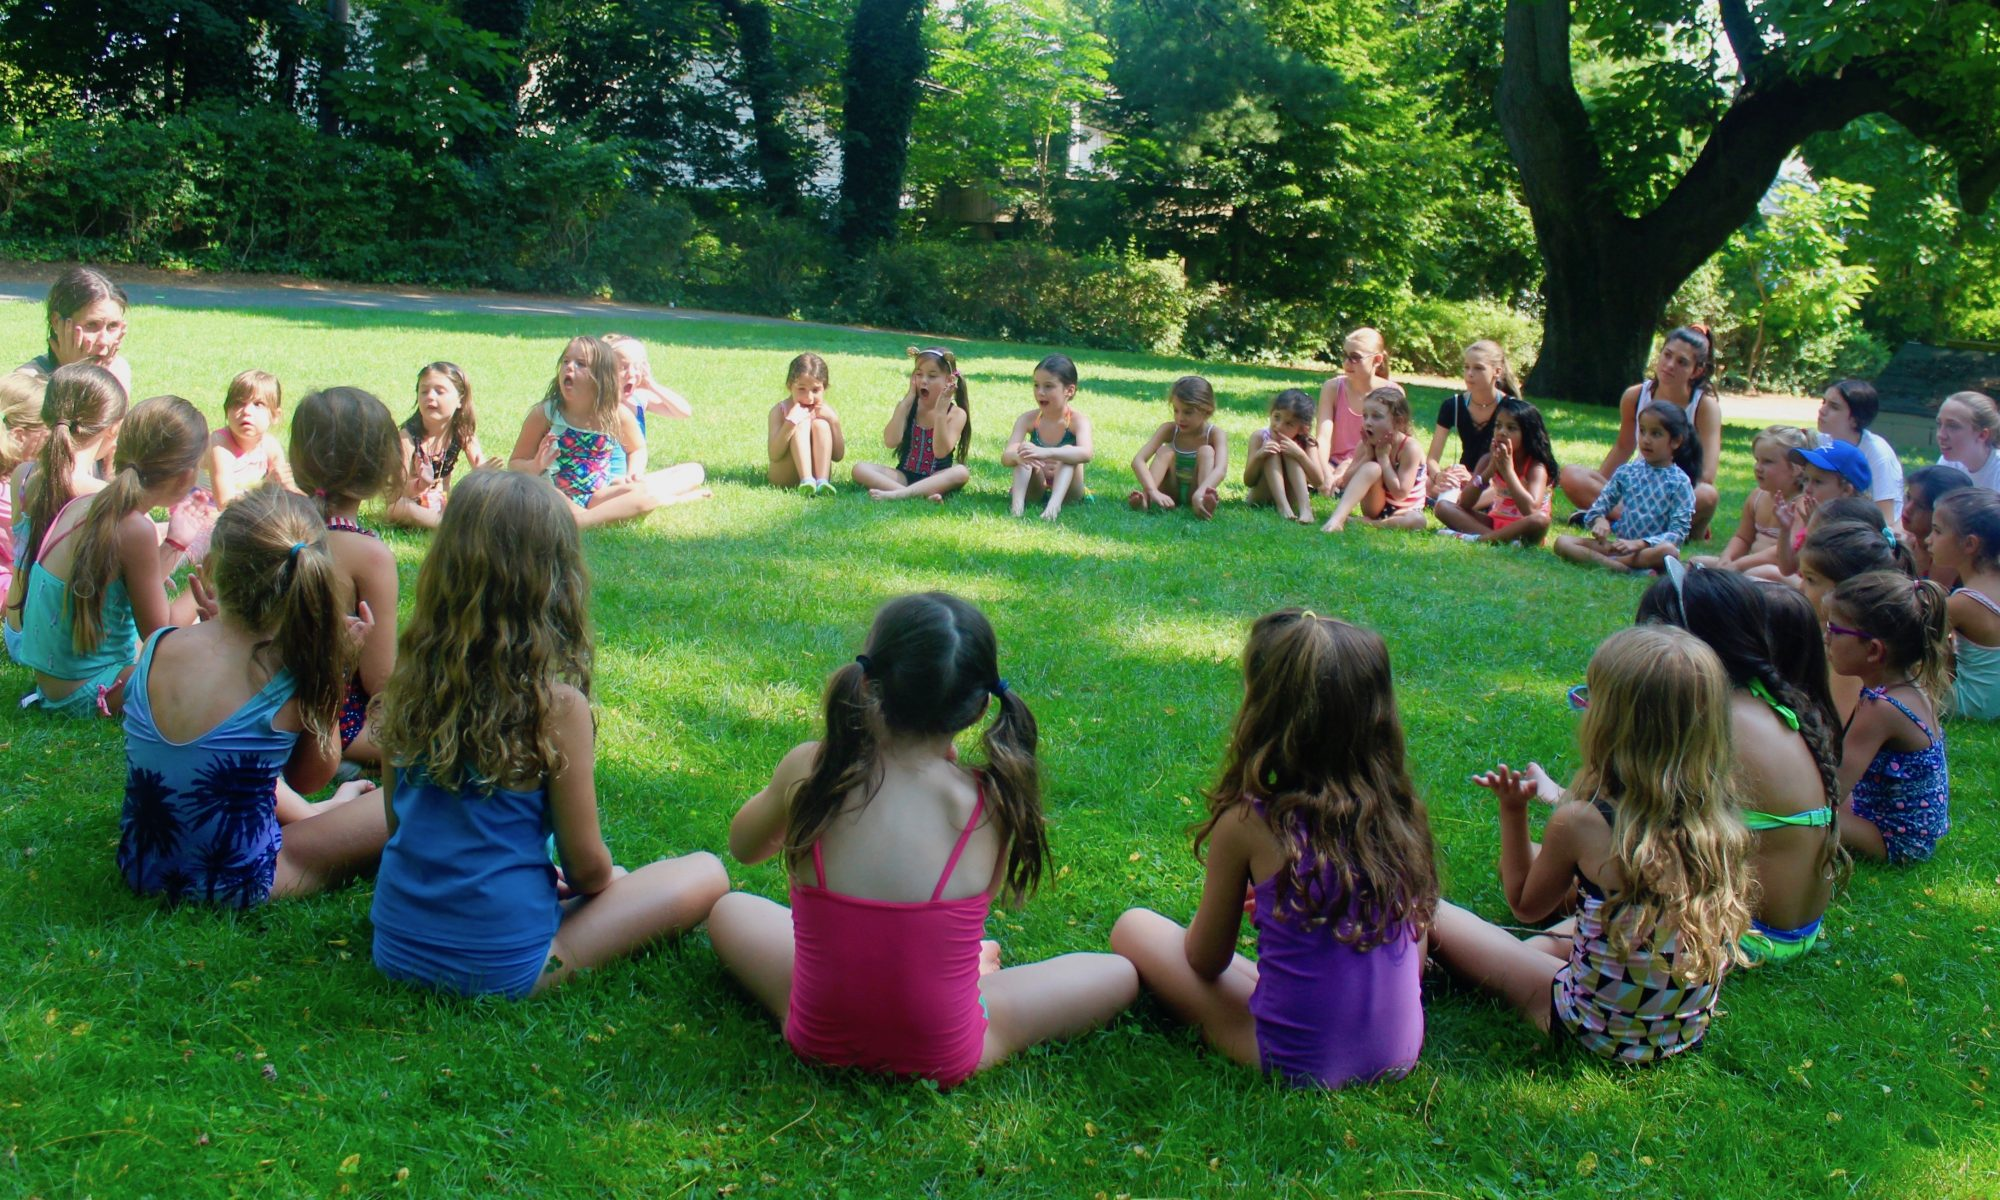 Junior camp girls in bathing suits sitting in a circle on the grass